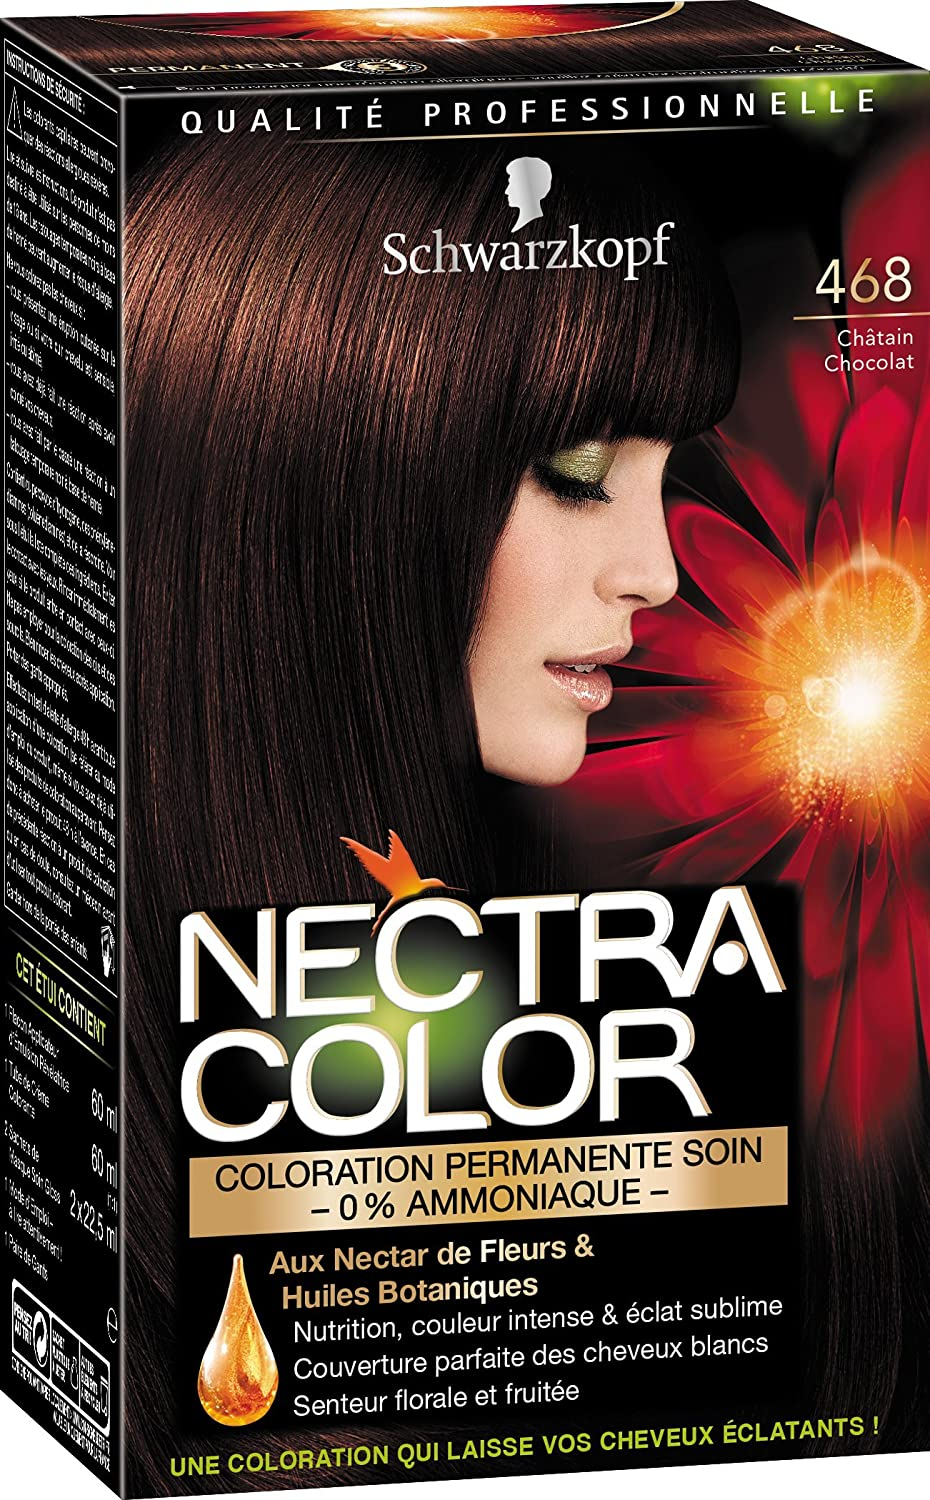 schwarzkopf nectra color coloration permanente 468 chtain chocolat 165 ml - Prix Coloration Schwarzkopf